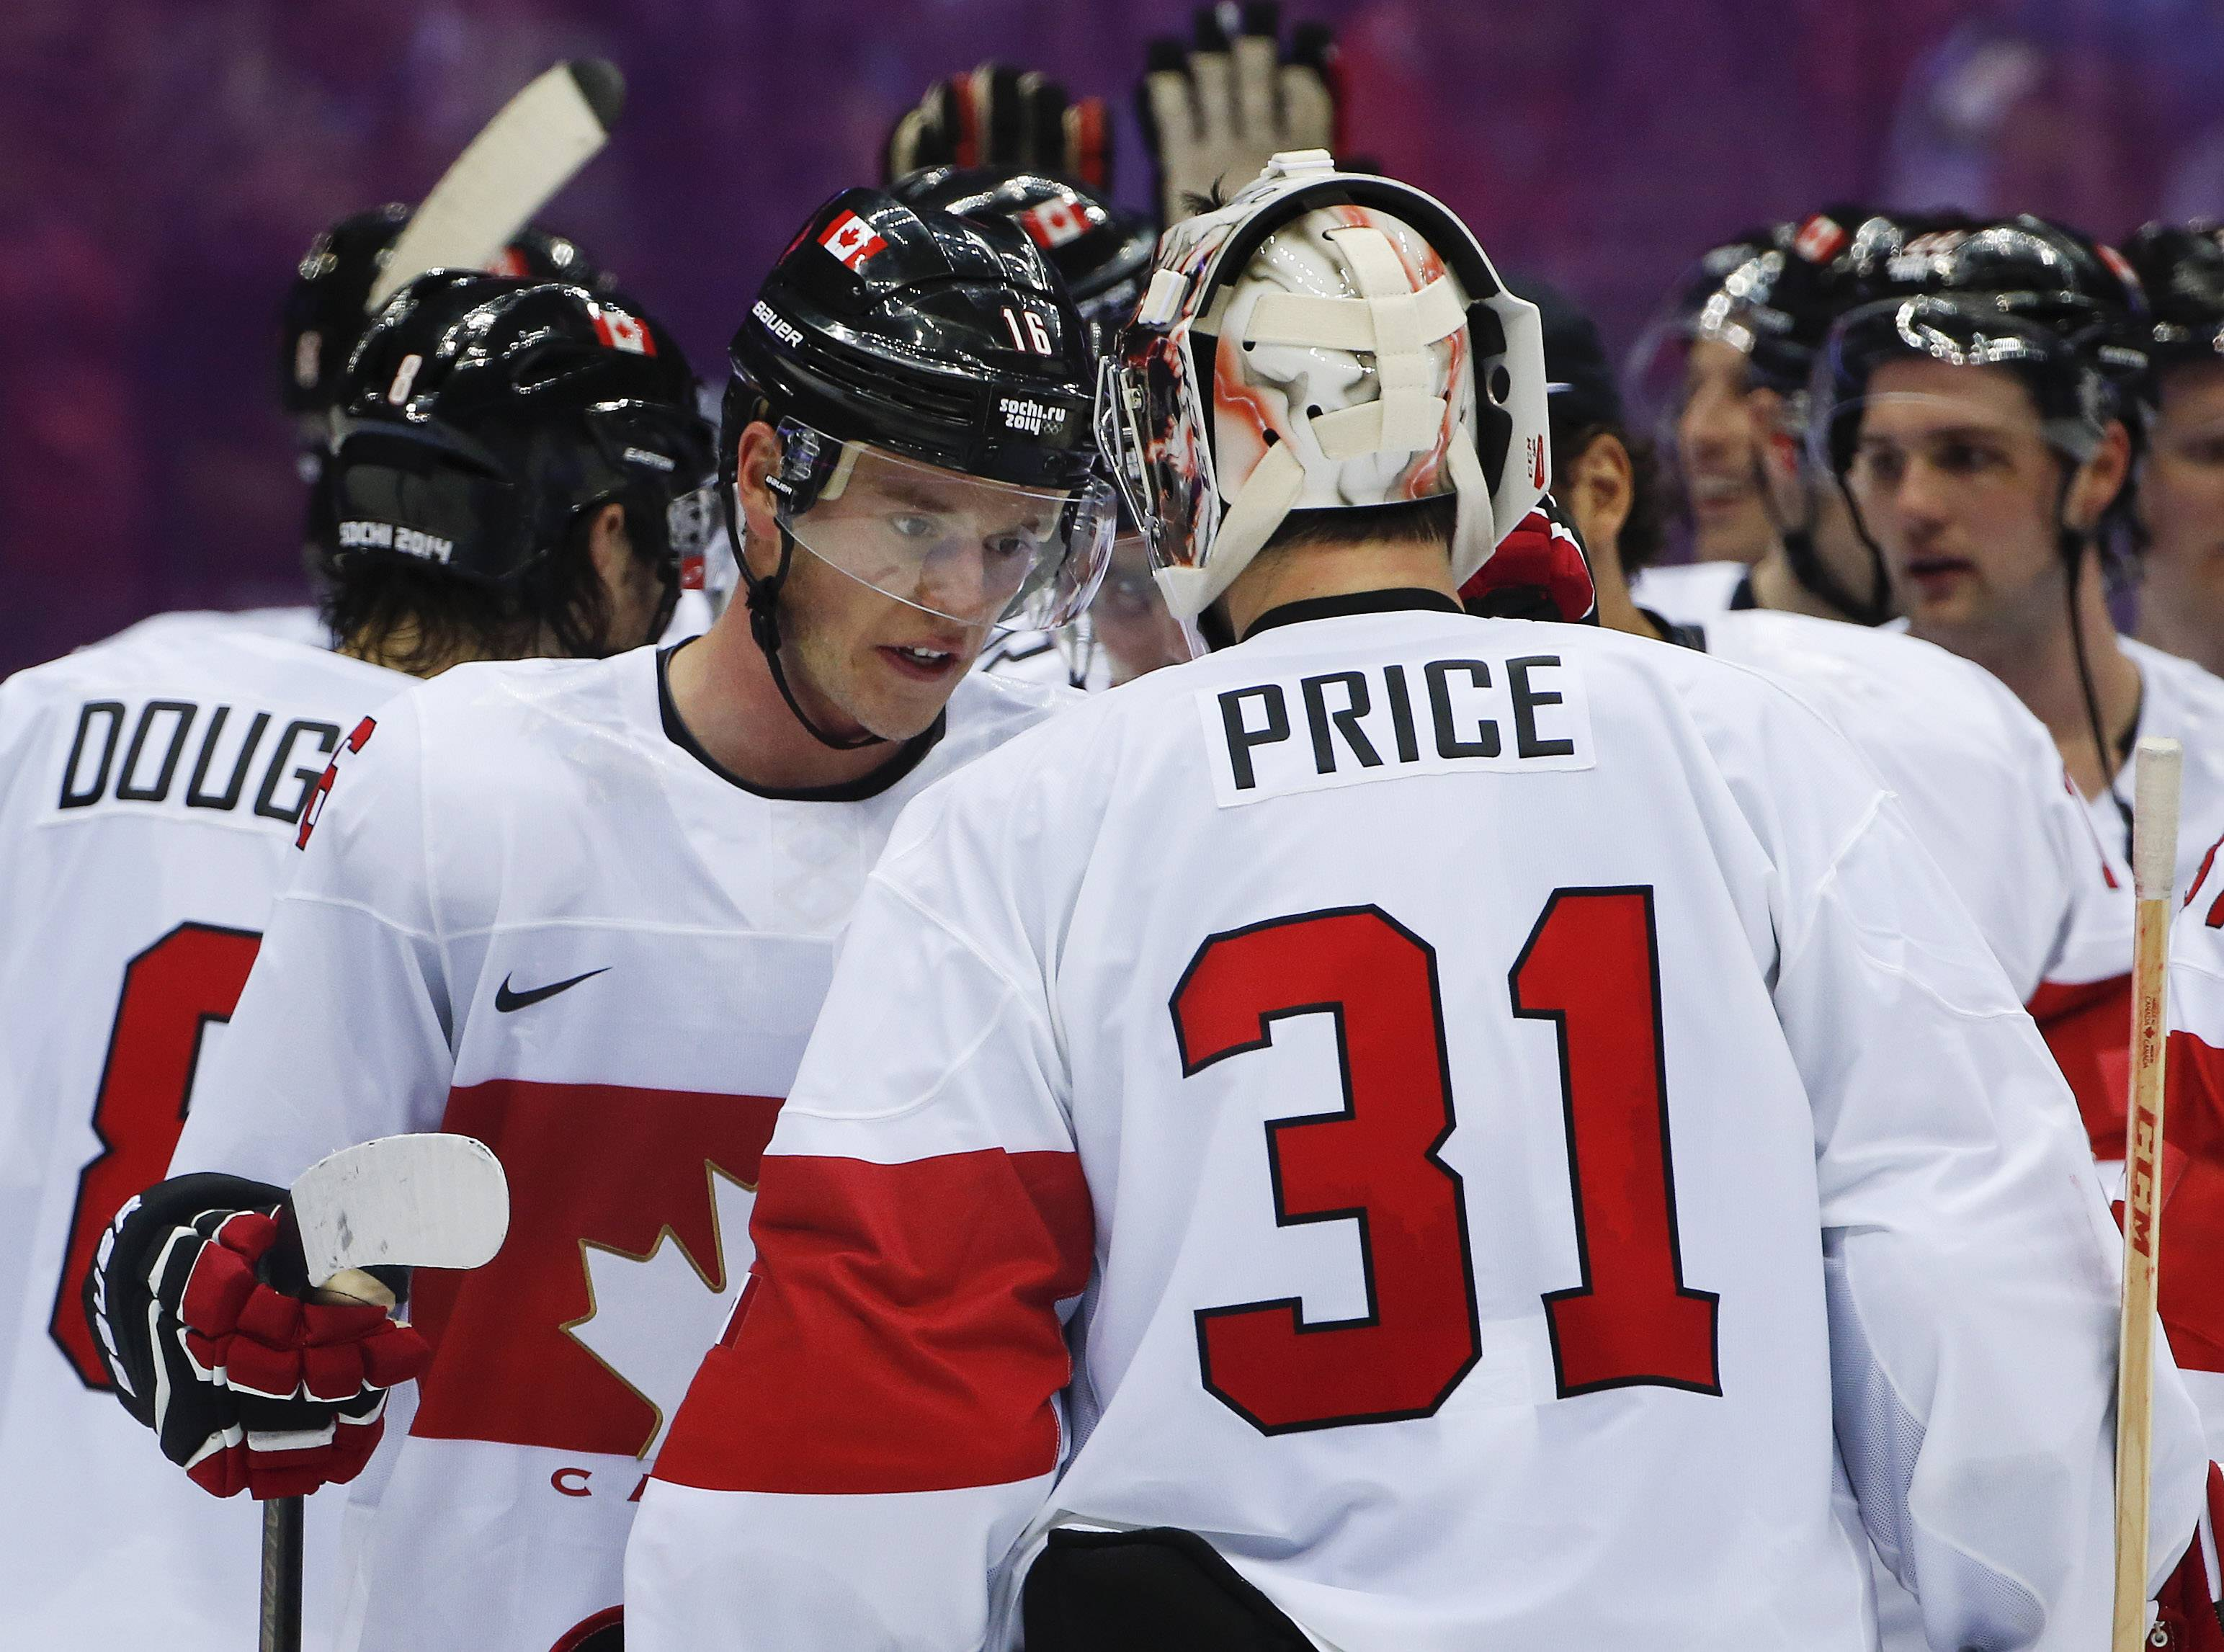 Canada forward Jonathan Toews congratulates Canada goaltender Carey Price after Canada's 2-1 win over Latvia during a men's quarterfinal ice hockey game at the 2014 Winter Olympics, Wednesday, Feb. 19, 2014, in Sochi, Russia.